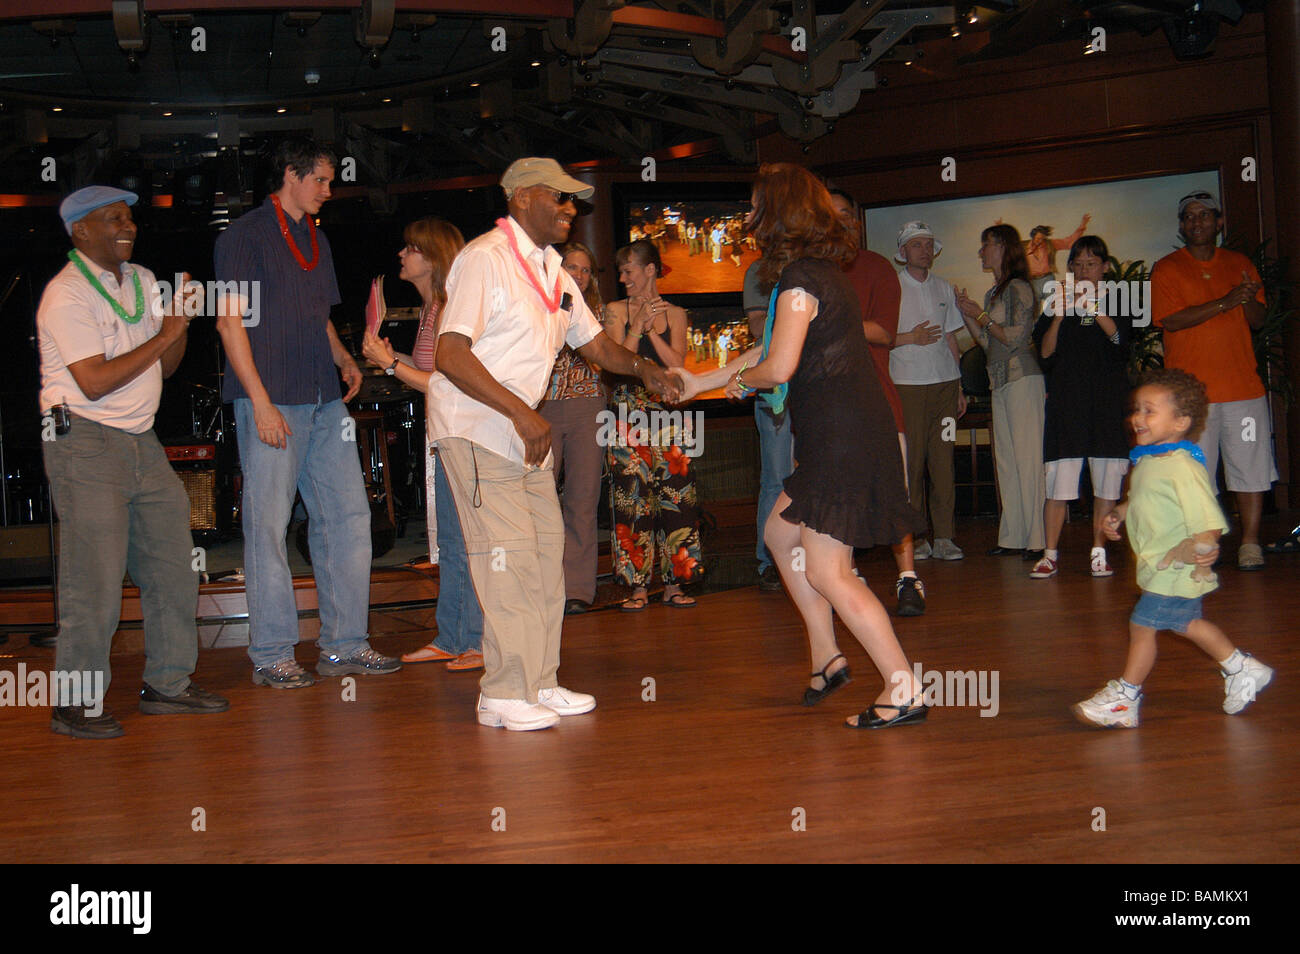 Frankie Manning dancing Lindy Hop cruising around the Caribbean May 2004.   (26 May 1914 - 27 April 2009) - Stock Image